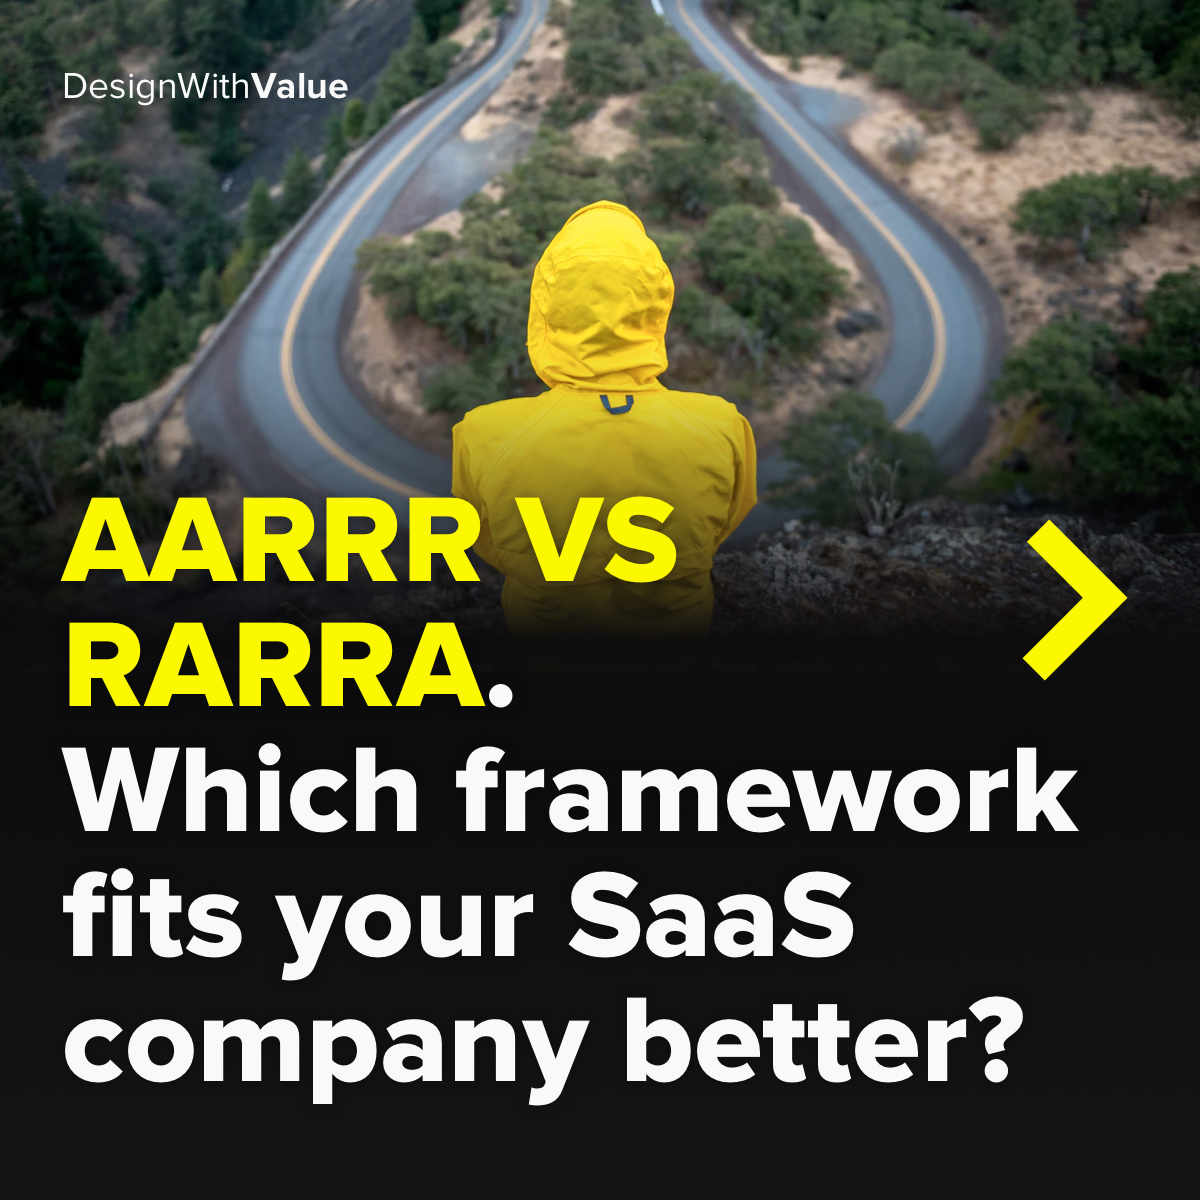 AARRR vs RARRA. Which framework fits your saas company better?